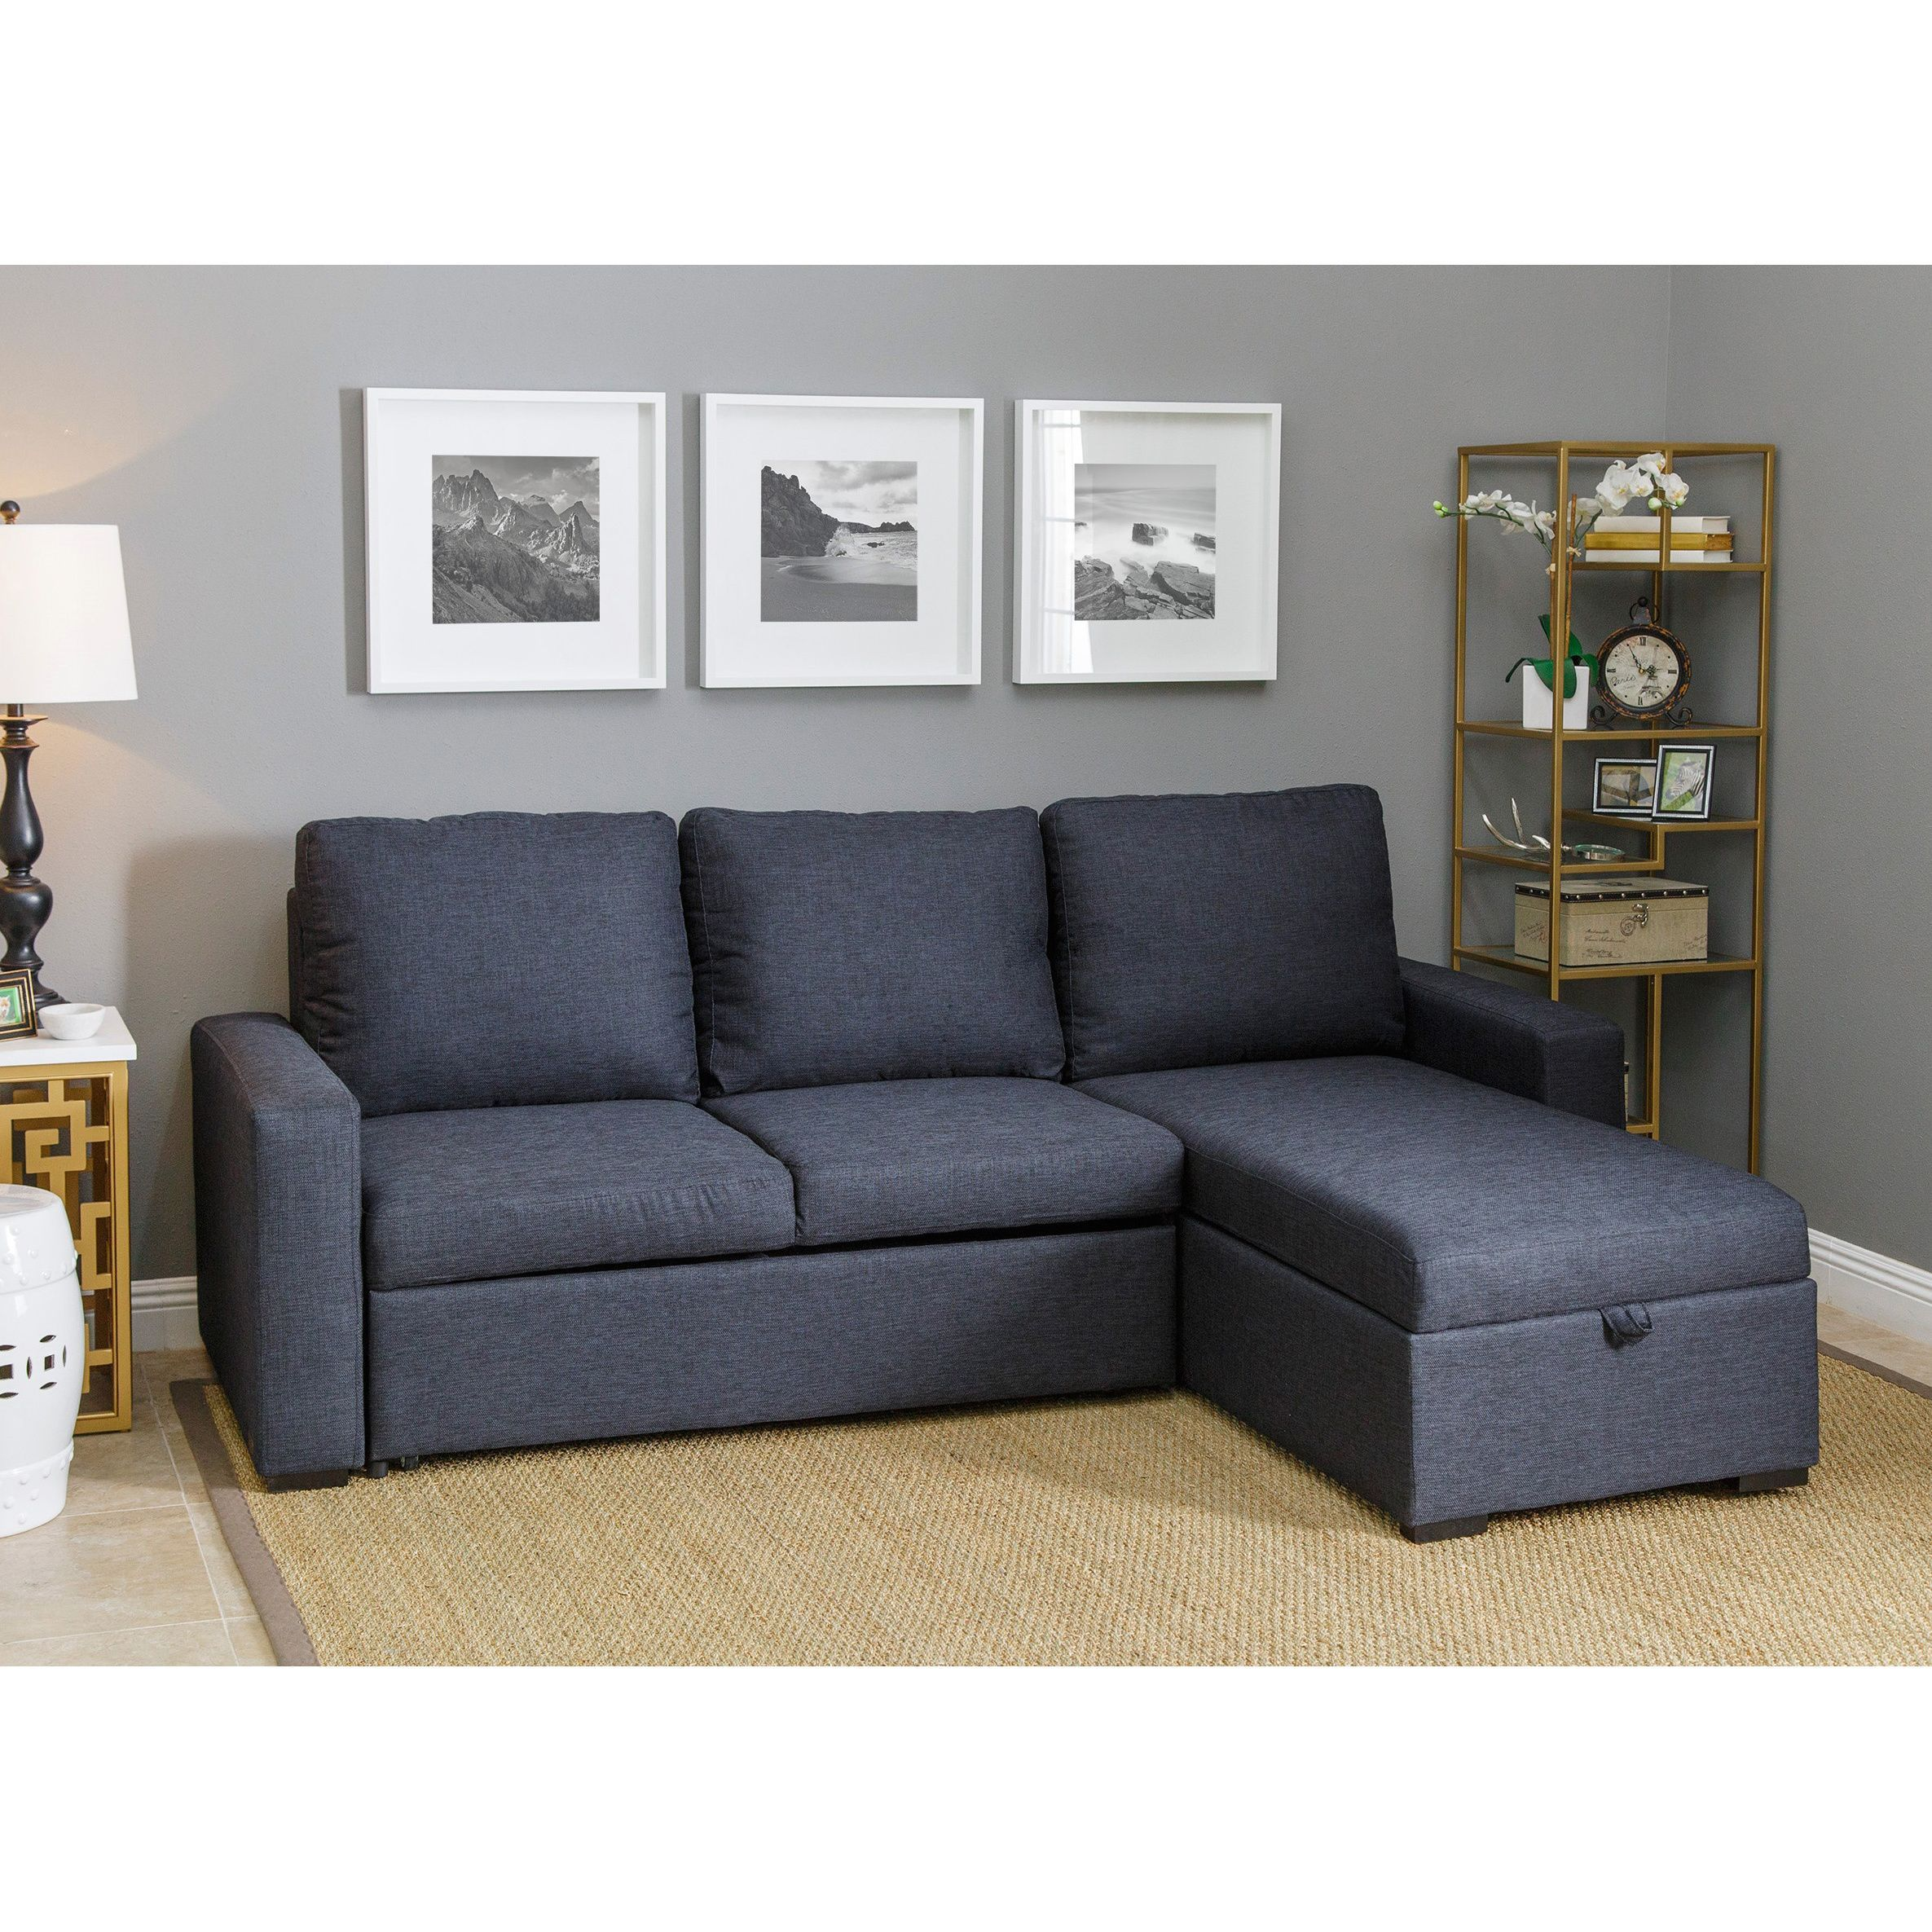 Best Abbyson Newport Upholstered Sofa Storage Sectional Grey 640 x 480